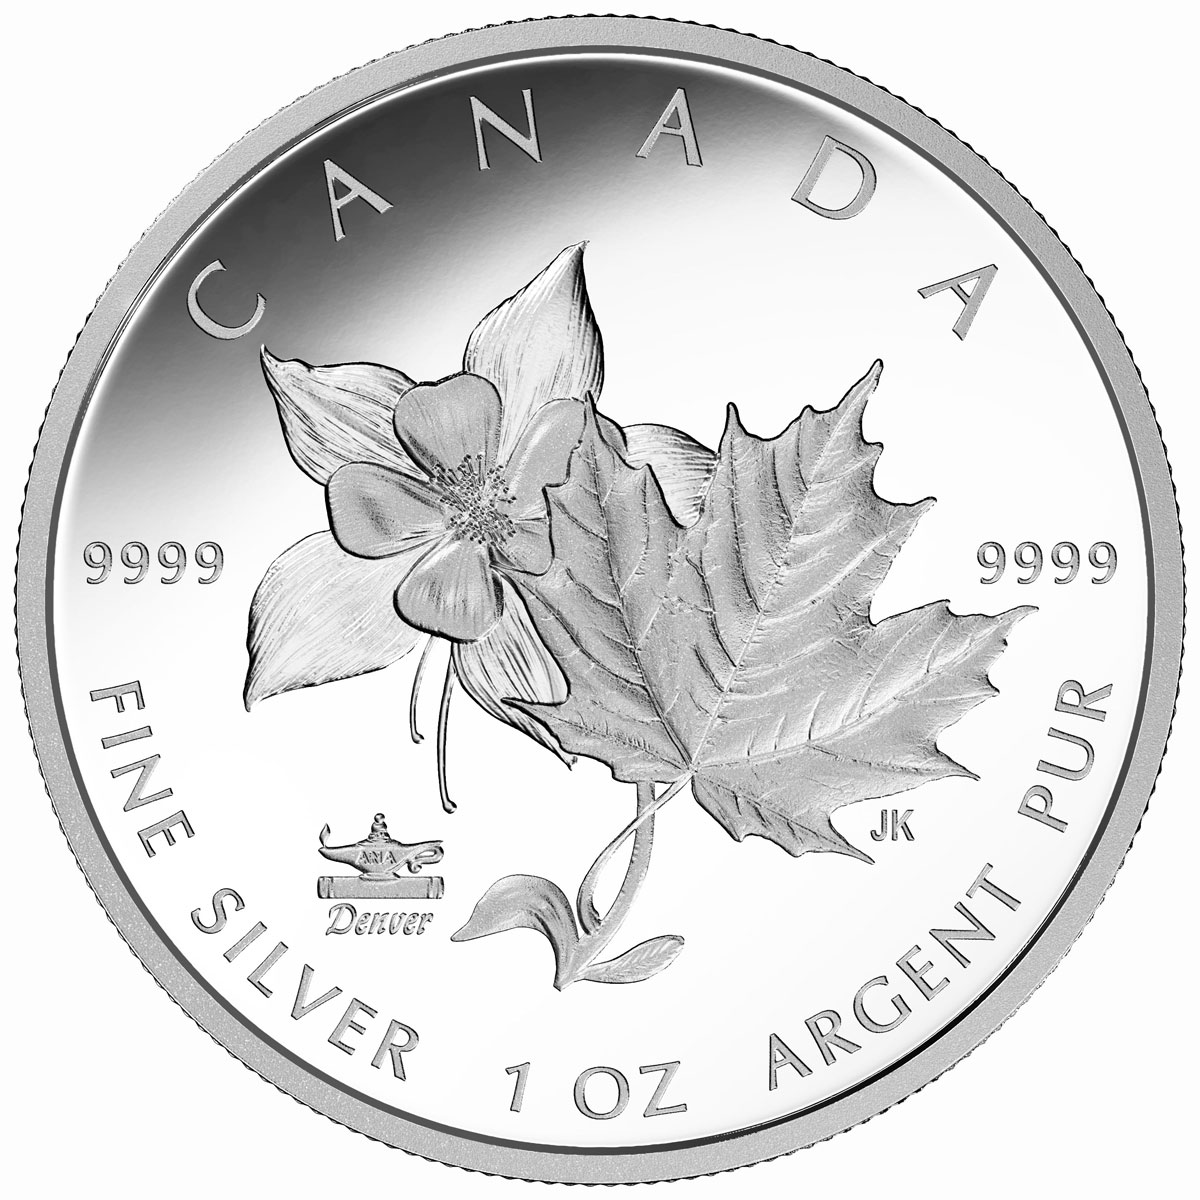 2017 Canada ANA State Flowers - Maple Leaf & Columbine Denver ANA Privy 1 oz Silver Proof $5 Coin GEM Proof OGP